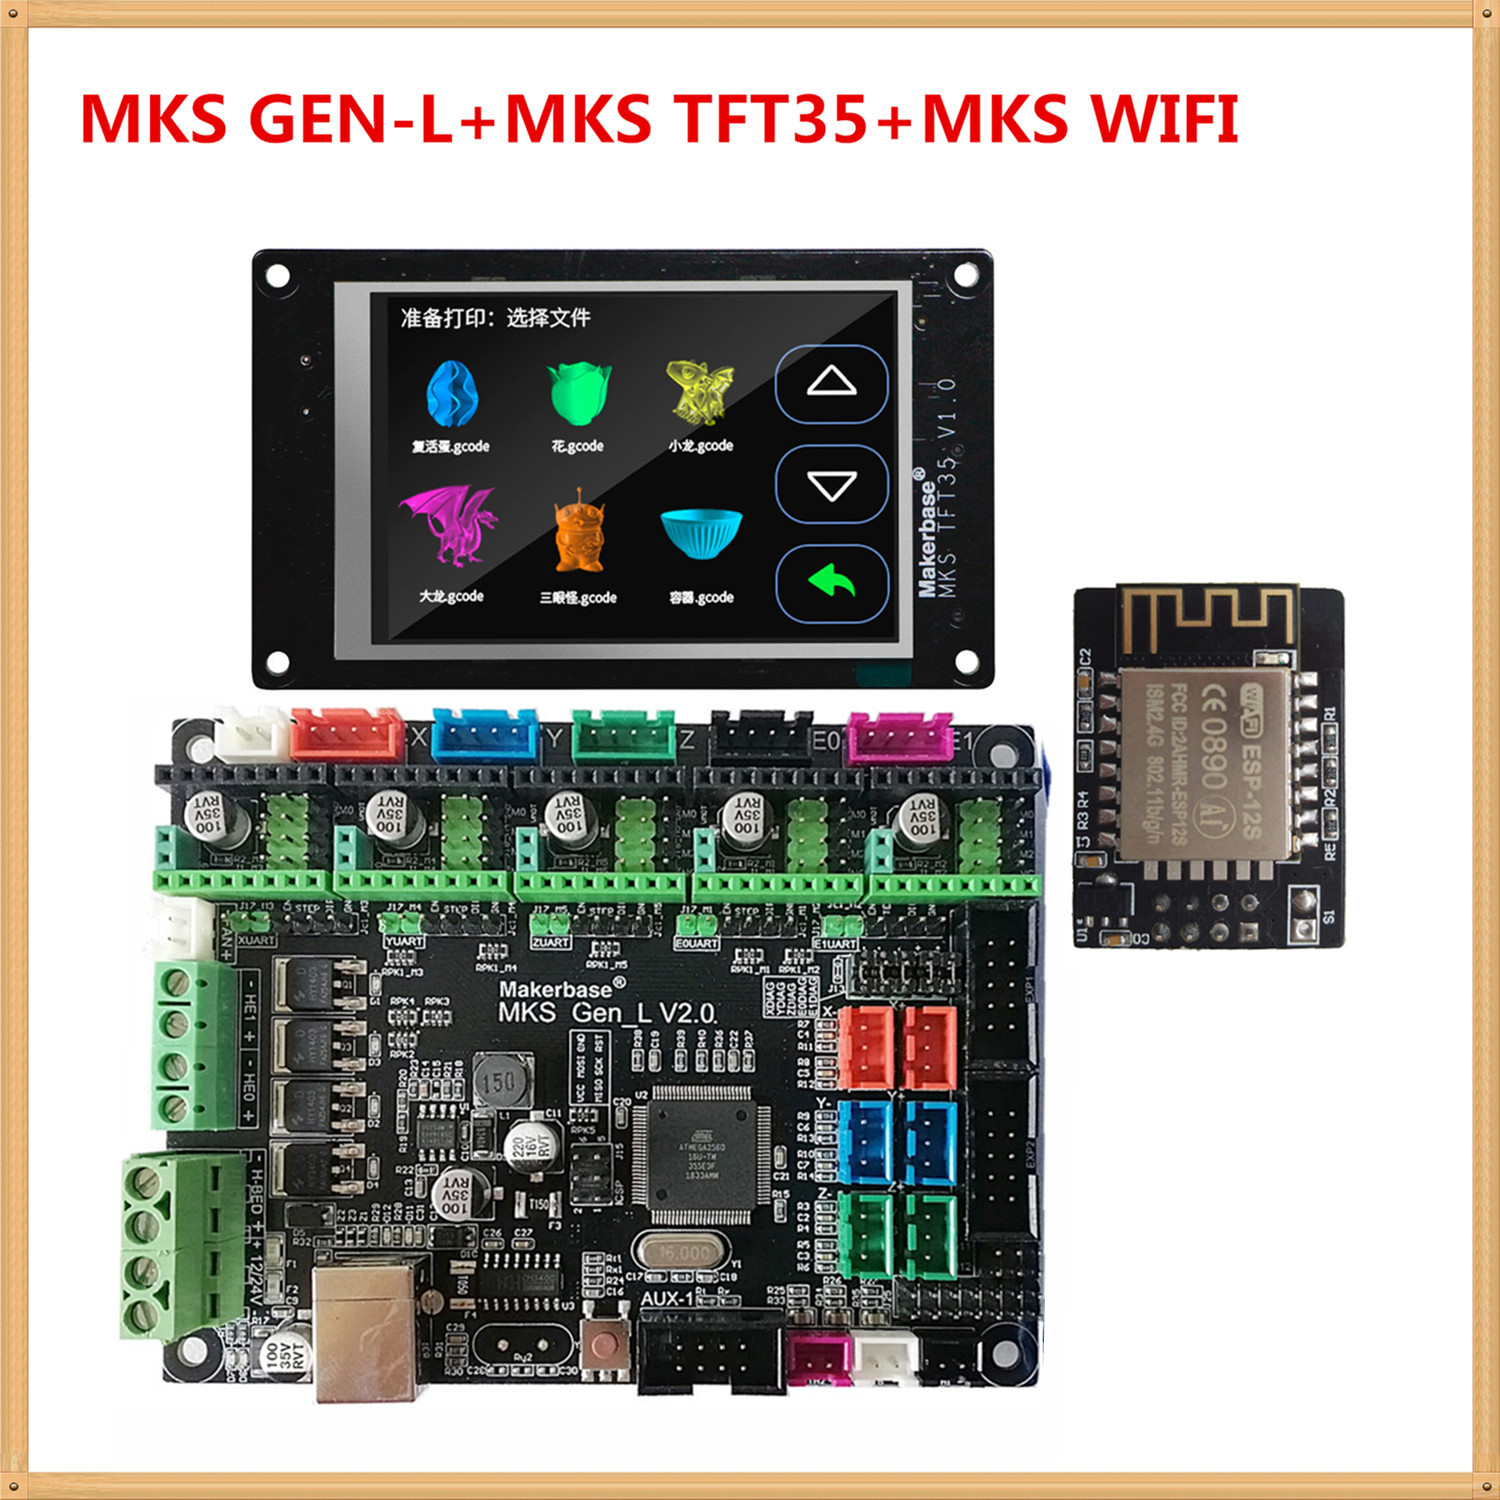 MKS GEN L 2.0 Mainboard MKS WIFI Module MKS TFT35 Lcd TFT 35 Display Controller Suite 3D Printer Control Unit Diy Starter Kit